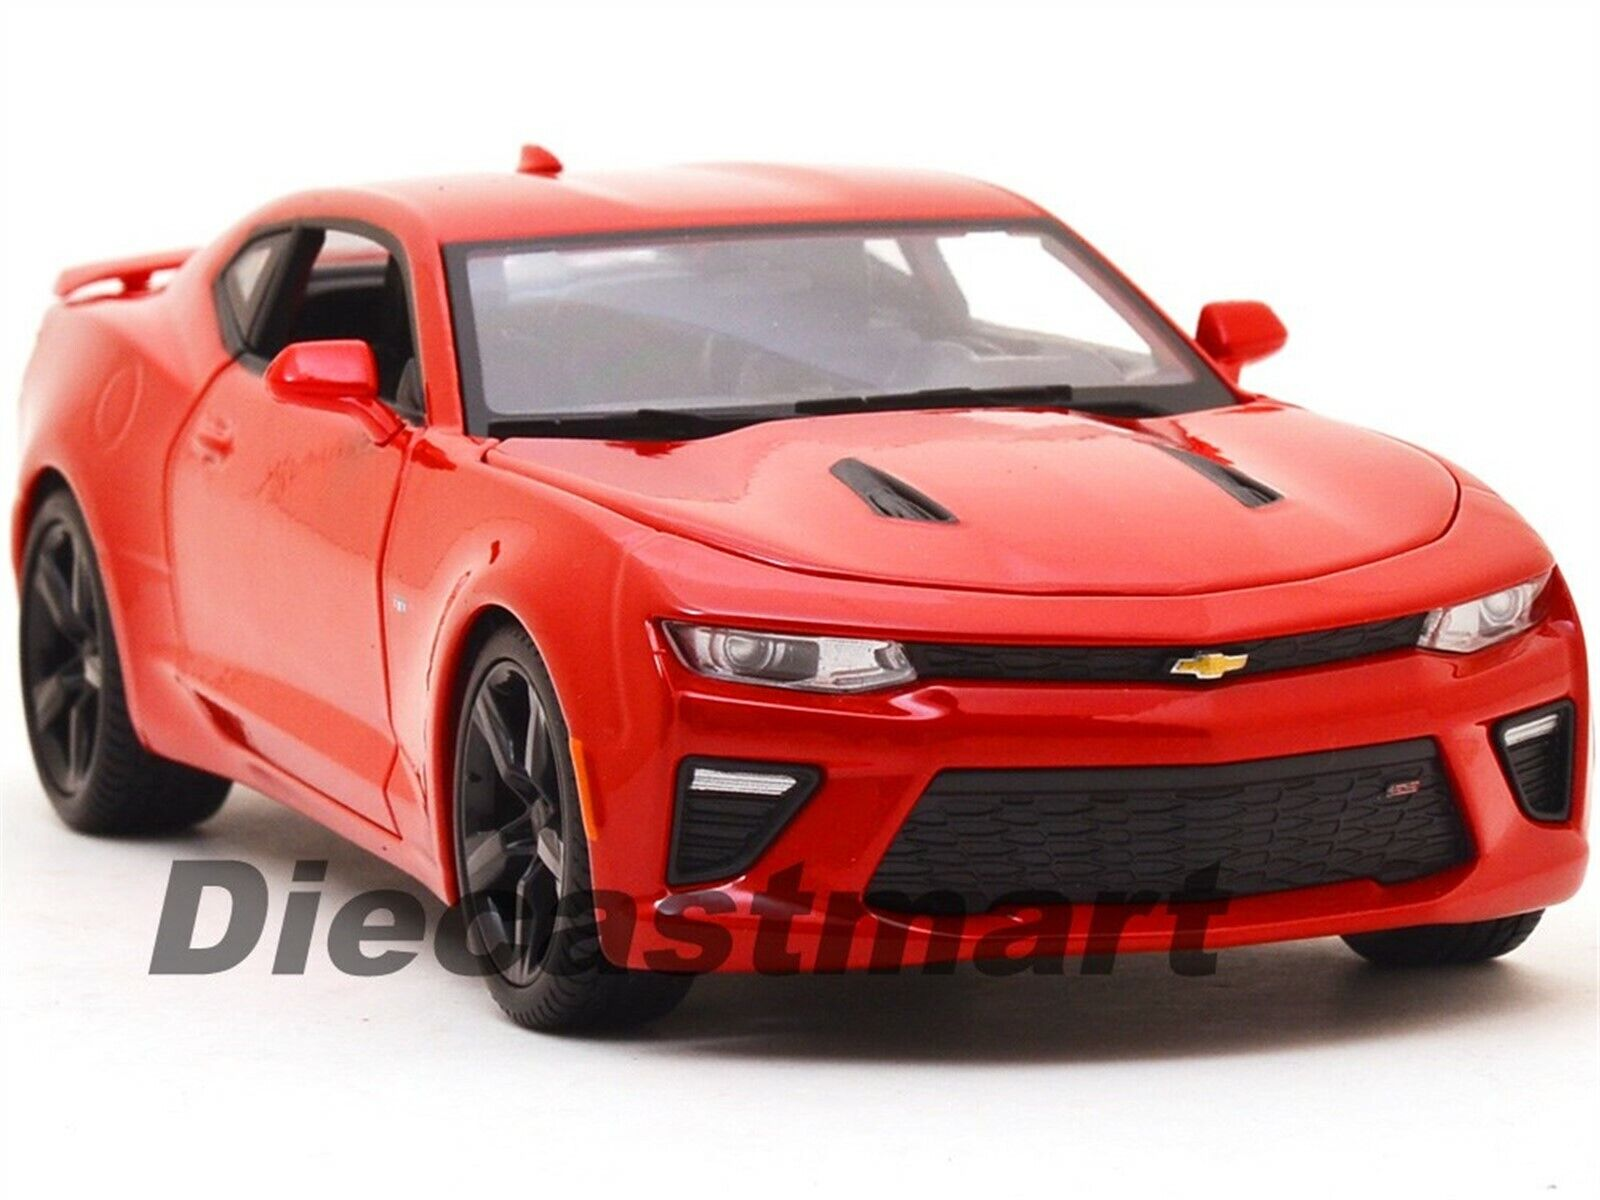 2016 Chevy Camaro SS 1//18 Scale Diecast Model Toy Car Maisto 31689R Red